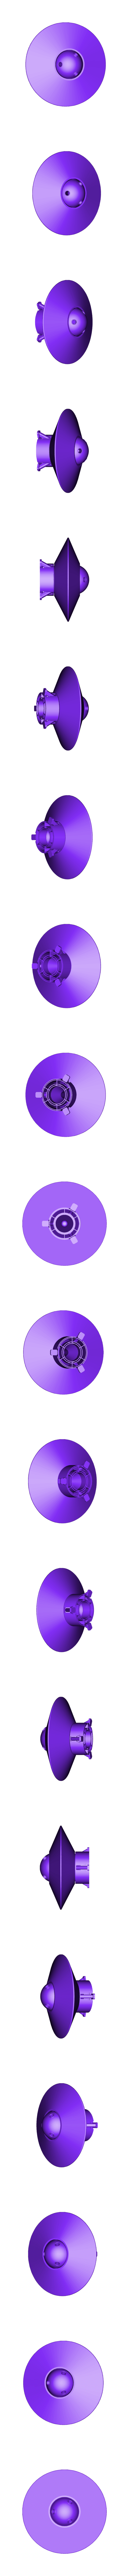 Spinning_UFO.stl Download free STL file UFO with Spinning Outer Disk • 3D printer design, Muzz64